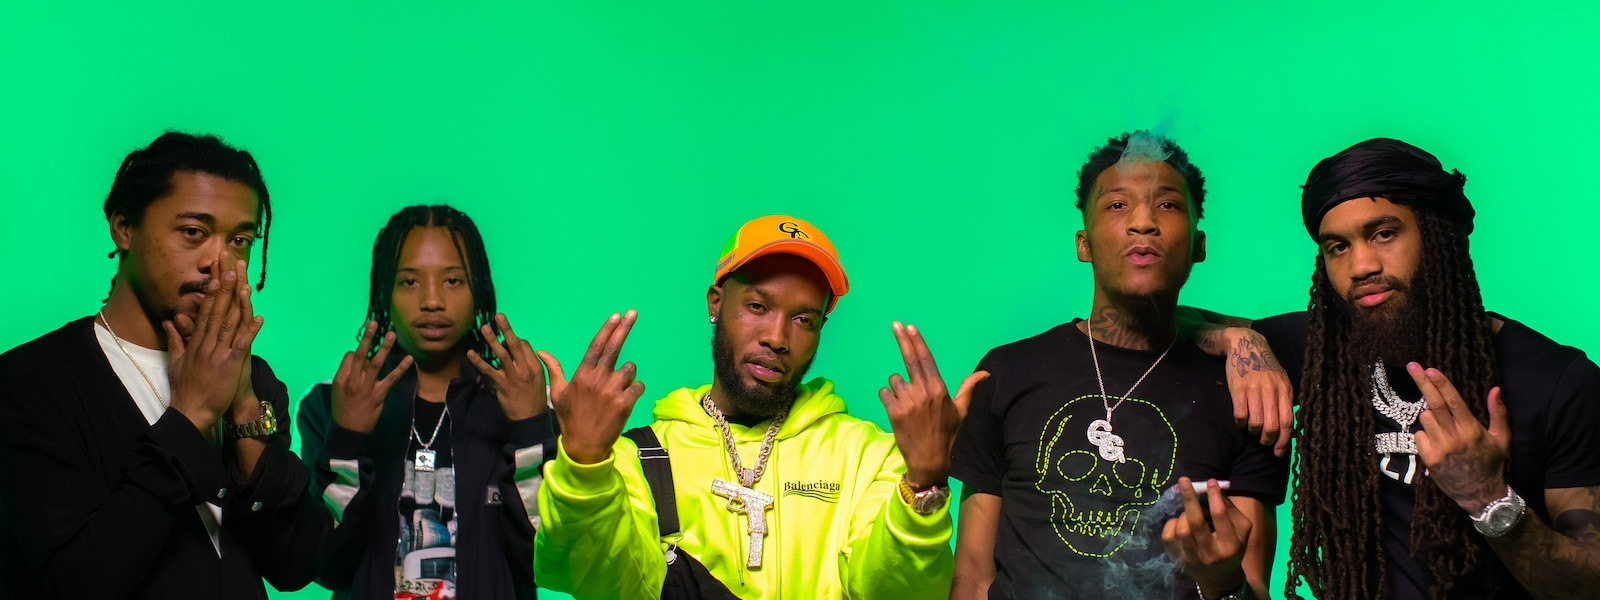 Shy Glizzy and Glizzy Gang - No Feelings [Official Video]